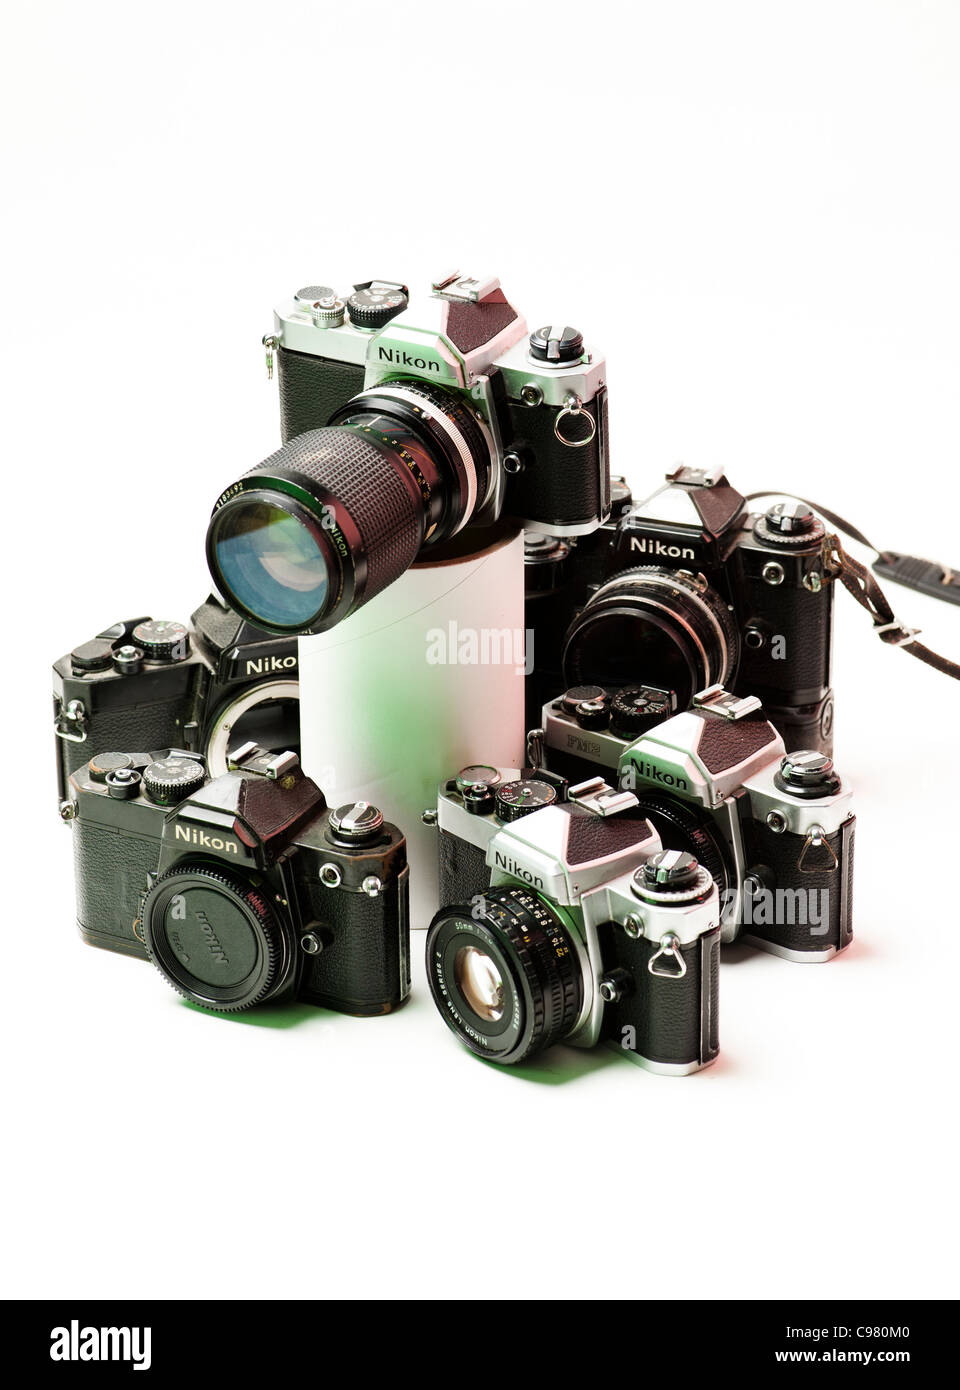 a selection of old Nikon 35mm film SLR single lens reflex cameras - Stock Image